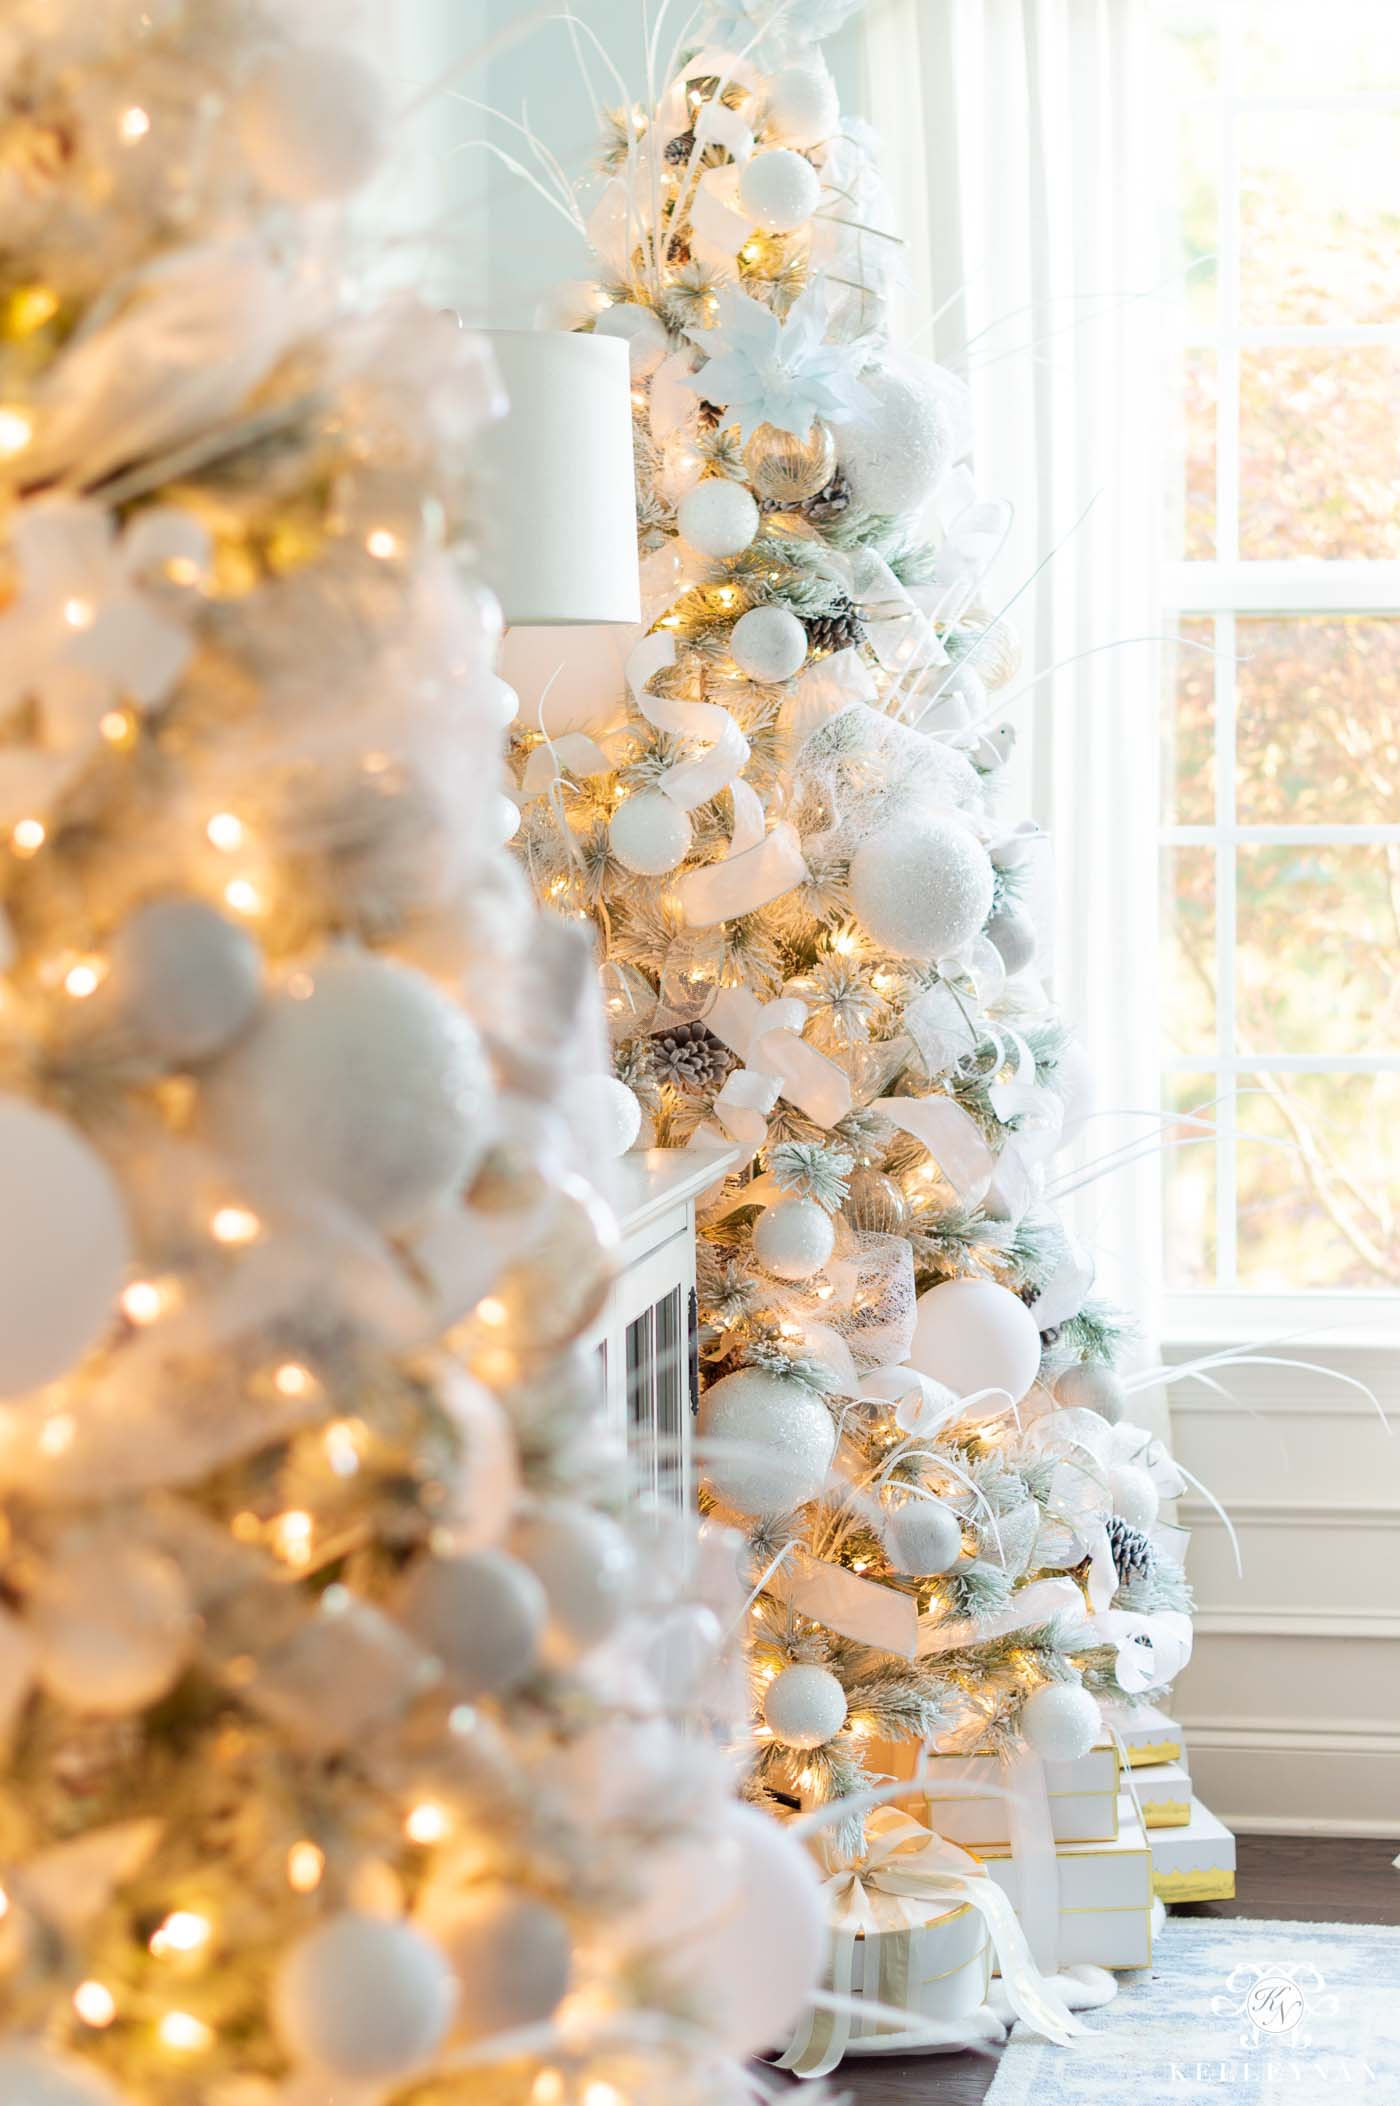 Elegant White Christmas Decor and Snowy Christmas Trees in the Dining Room